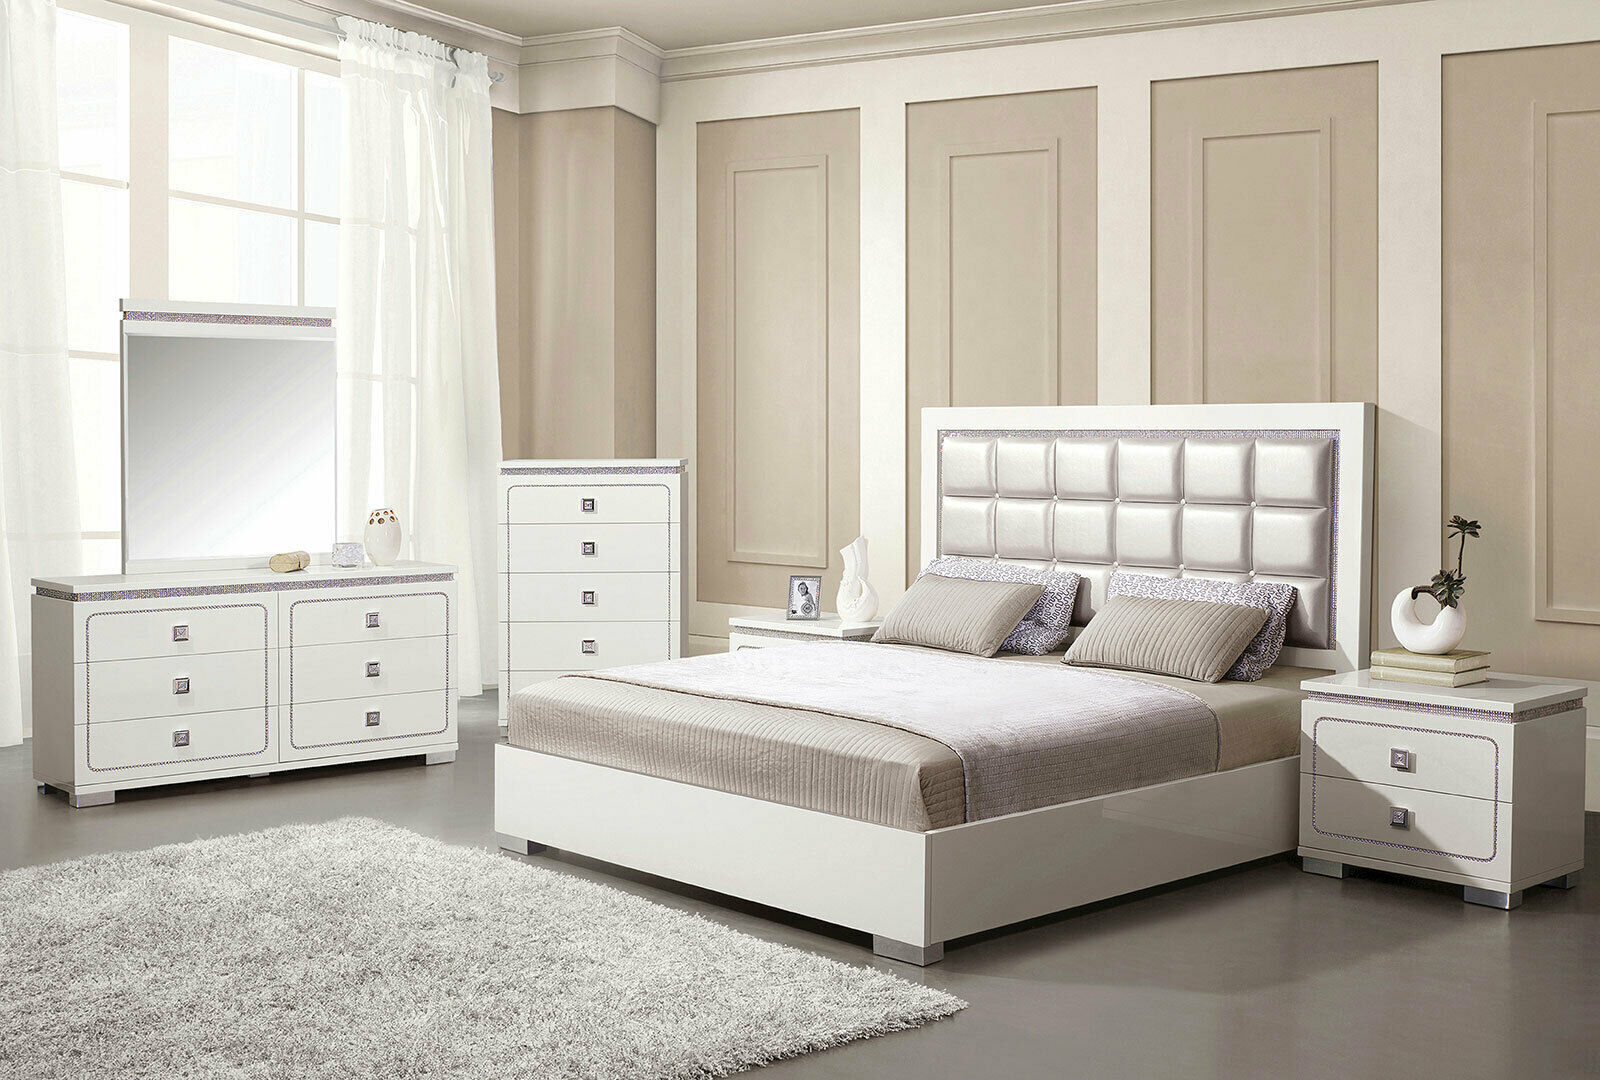 NEW Glamorous White & Pearl Faux Leather Bedroom Furniture